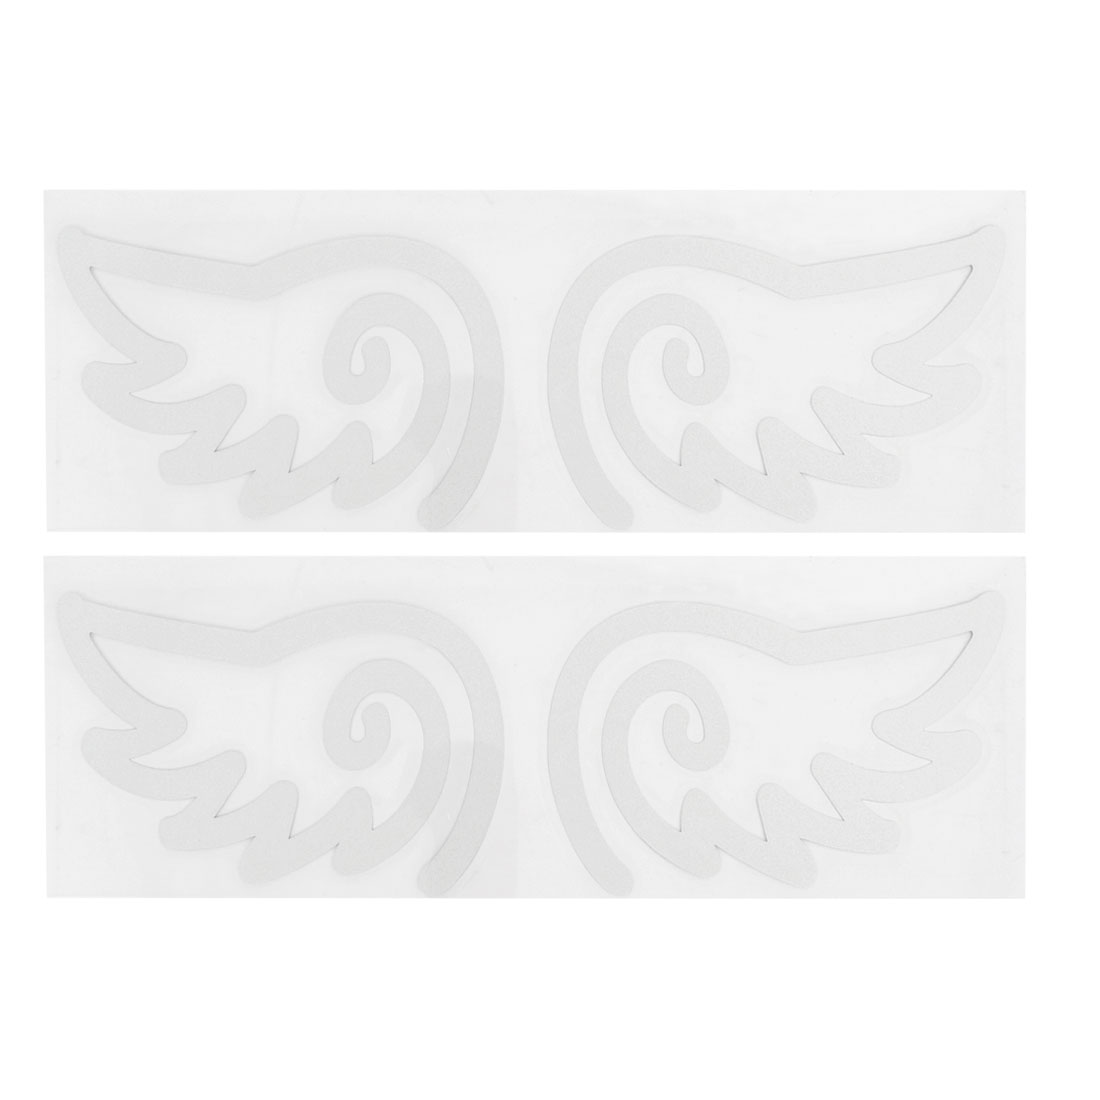 2 Pairs Silver Tone Plastic Wing Shape Reflective Sticker Decal for Auto